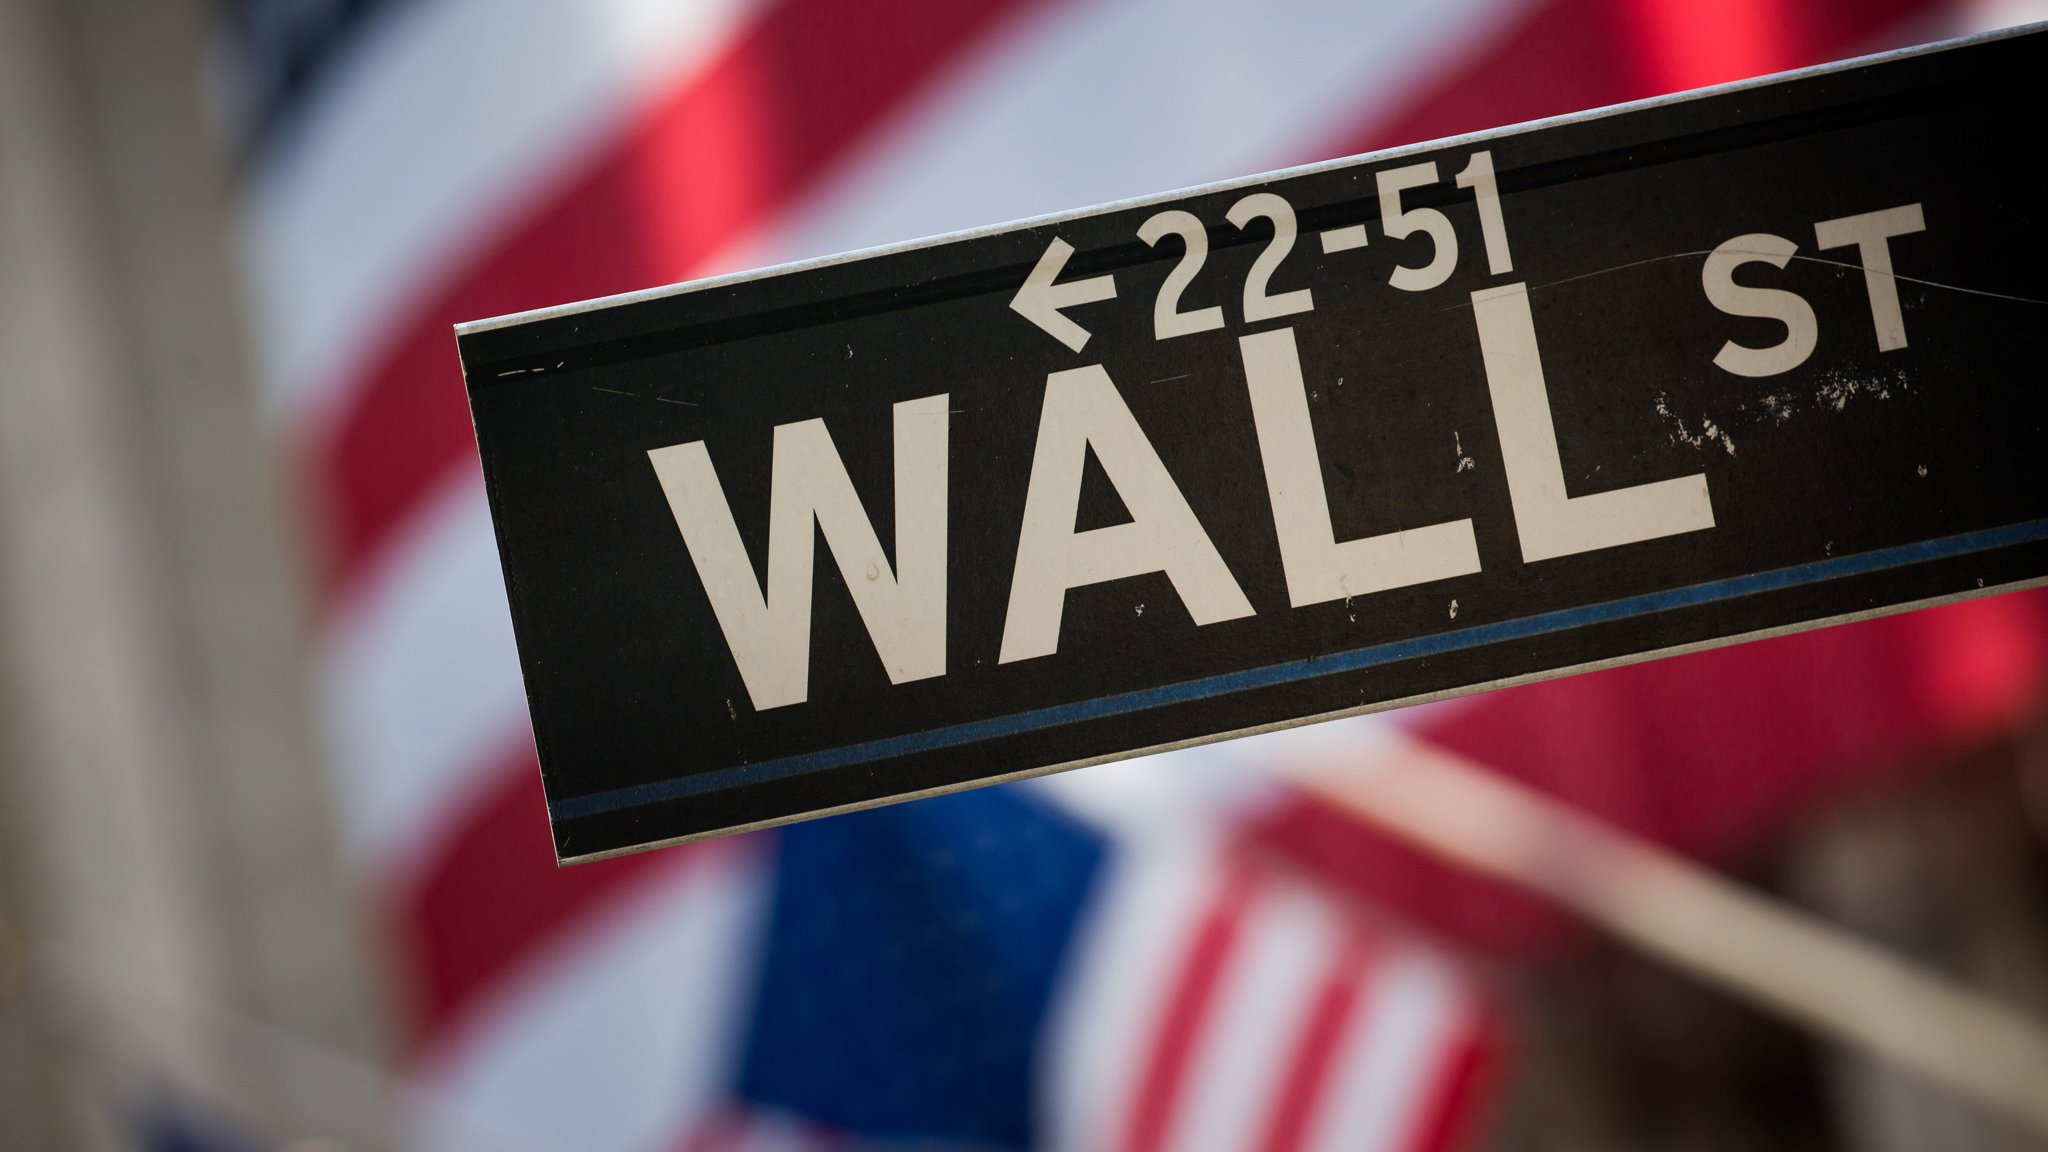 Wall Street executives push back on tax hit to New Yorkers